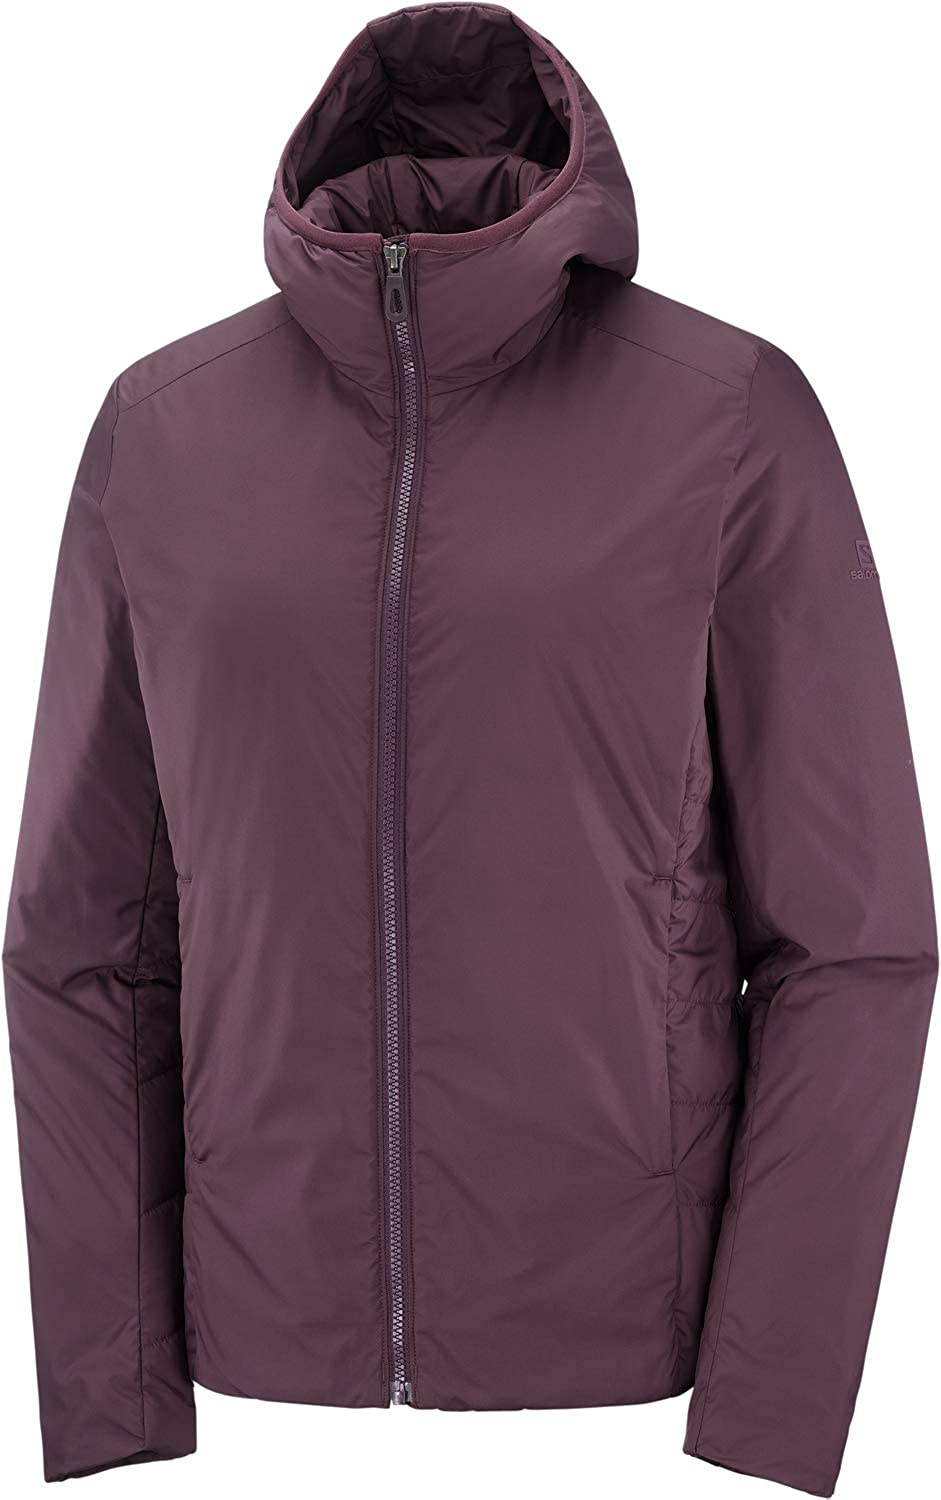 Salomon womens Outrack Insulated Hoodie